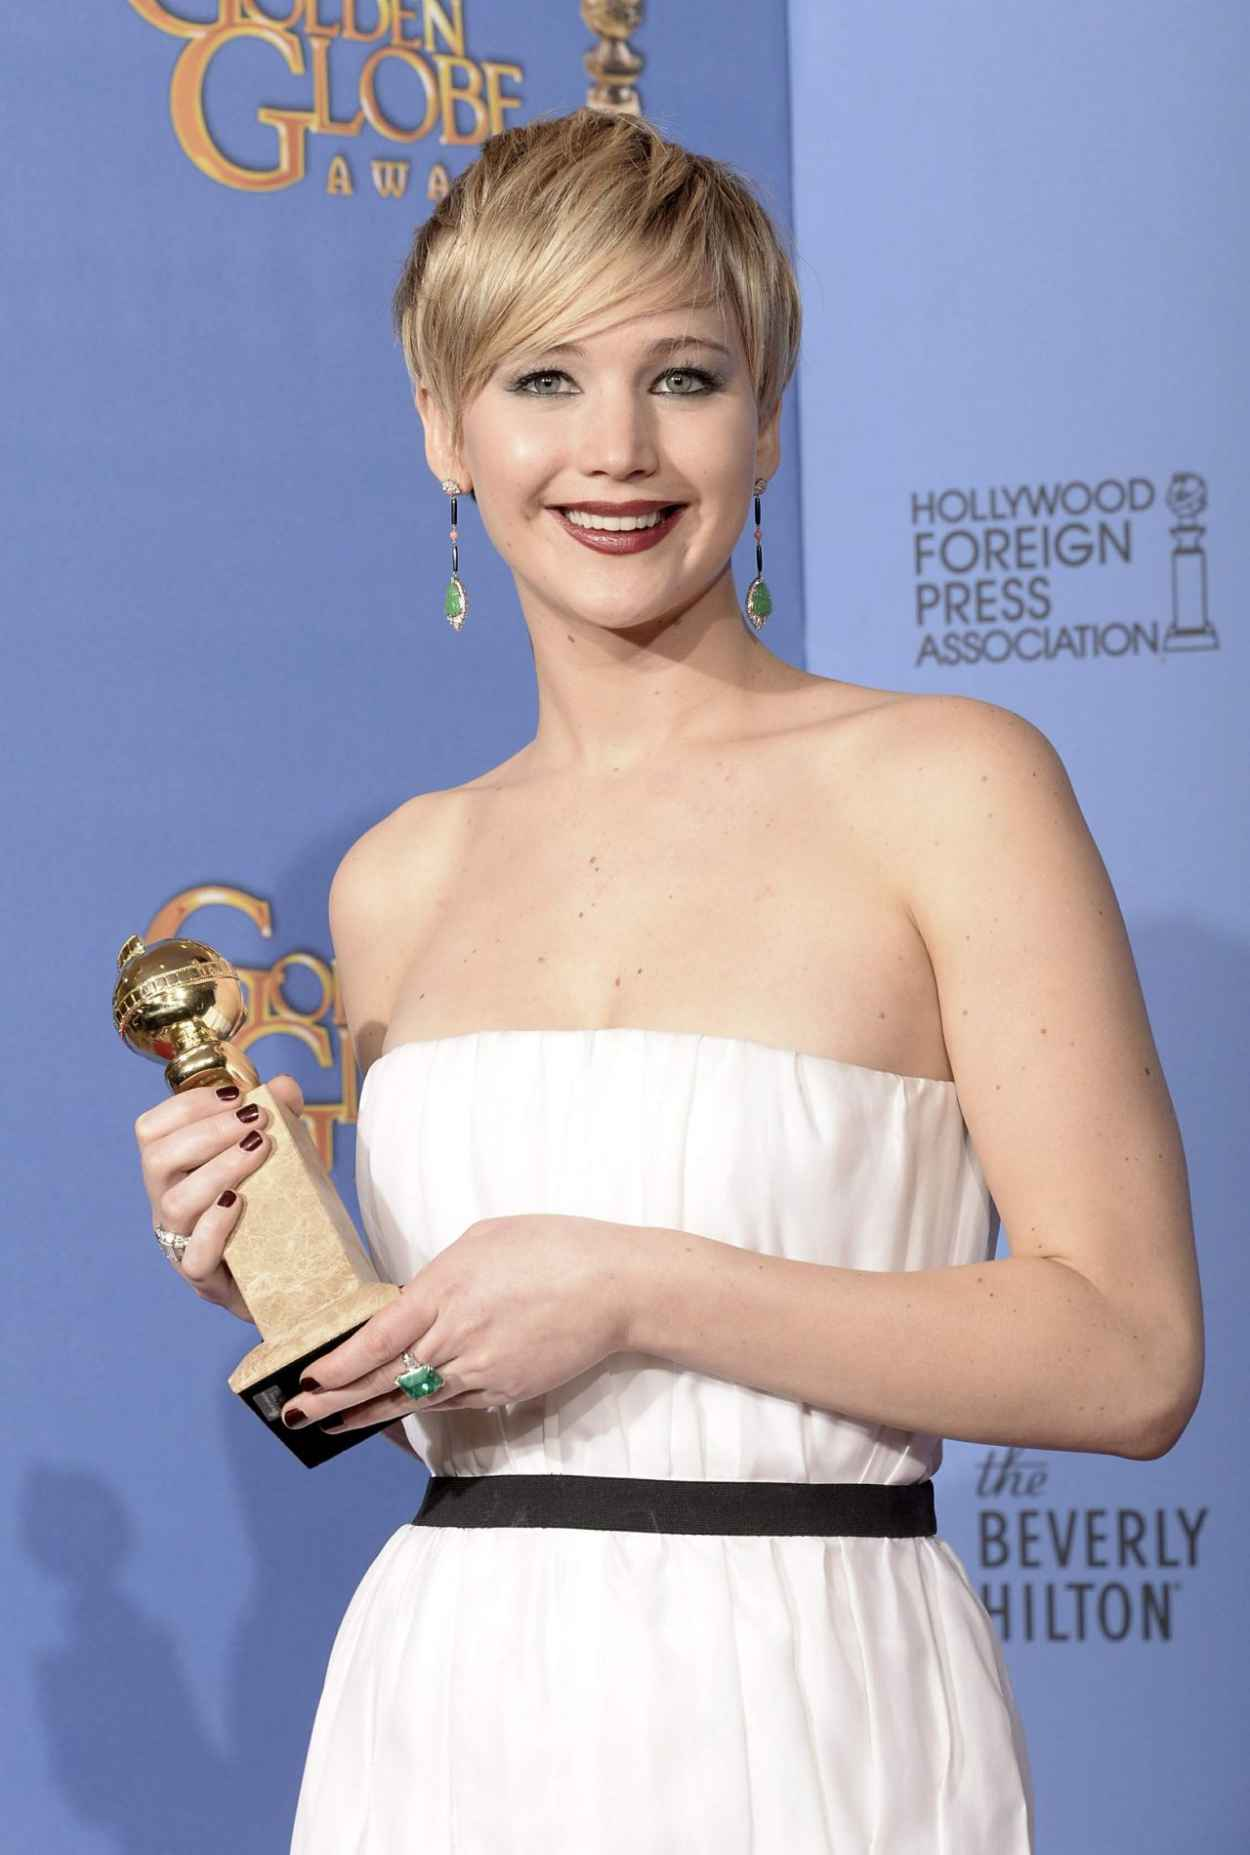 Jennifer Lawrence - Golden Globe Awards 2015 Red Carpet, Ceremony and After Party - 350 Photos!-1